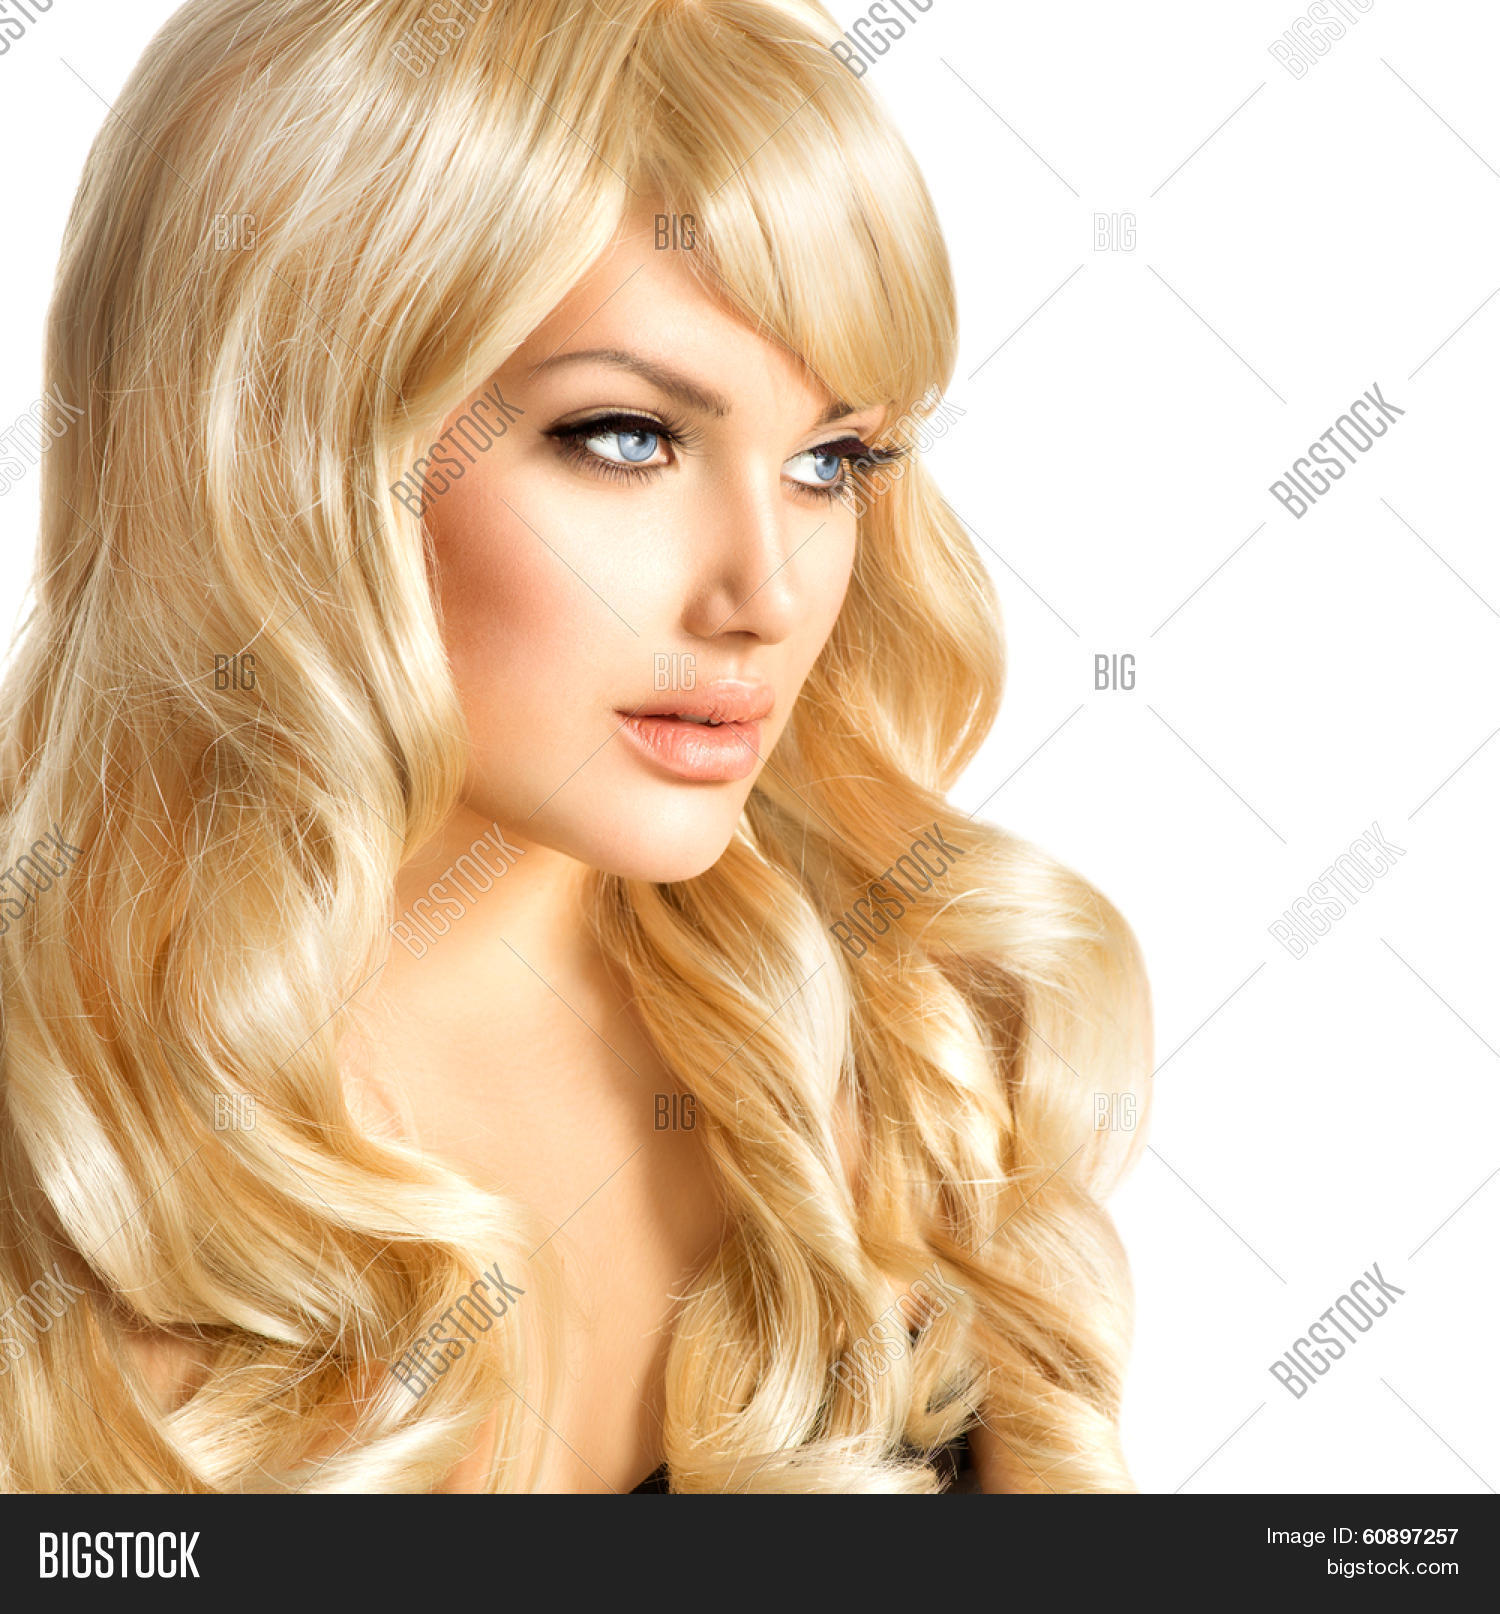 Beauty Blonde Woman Image  Photo Free Trial  Bigstock-7676